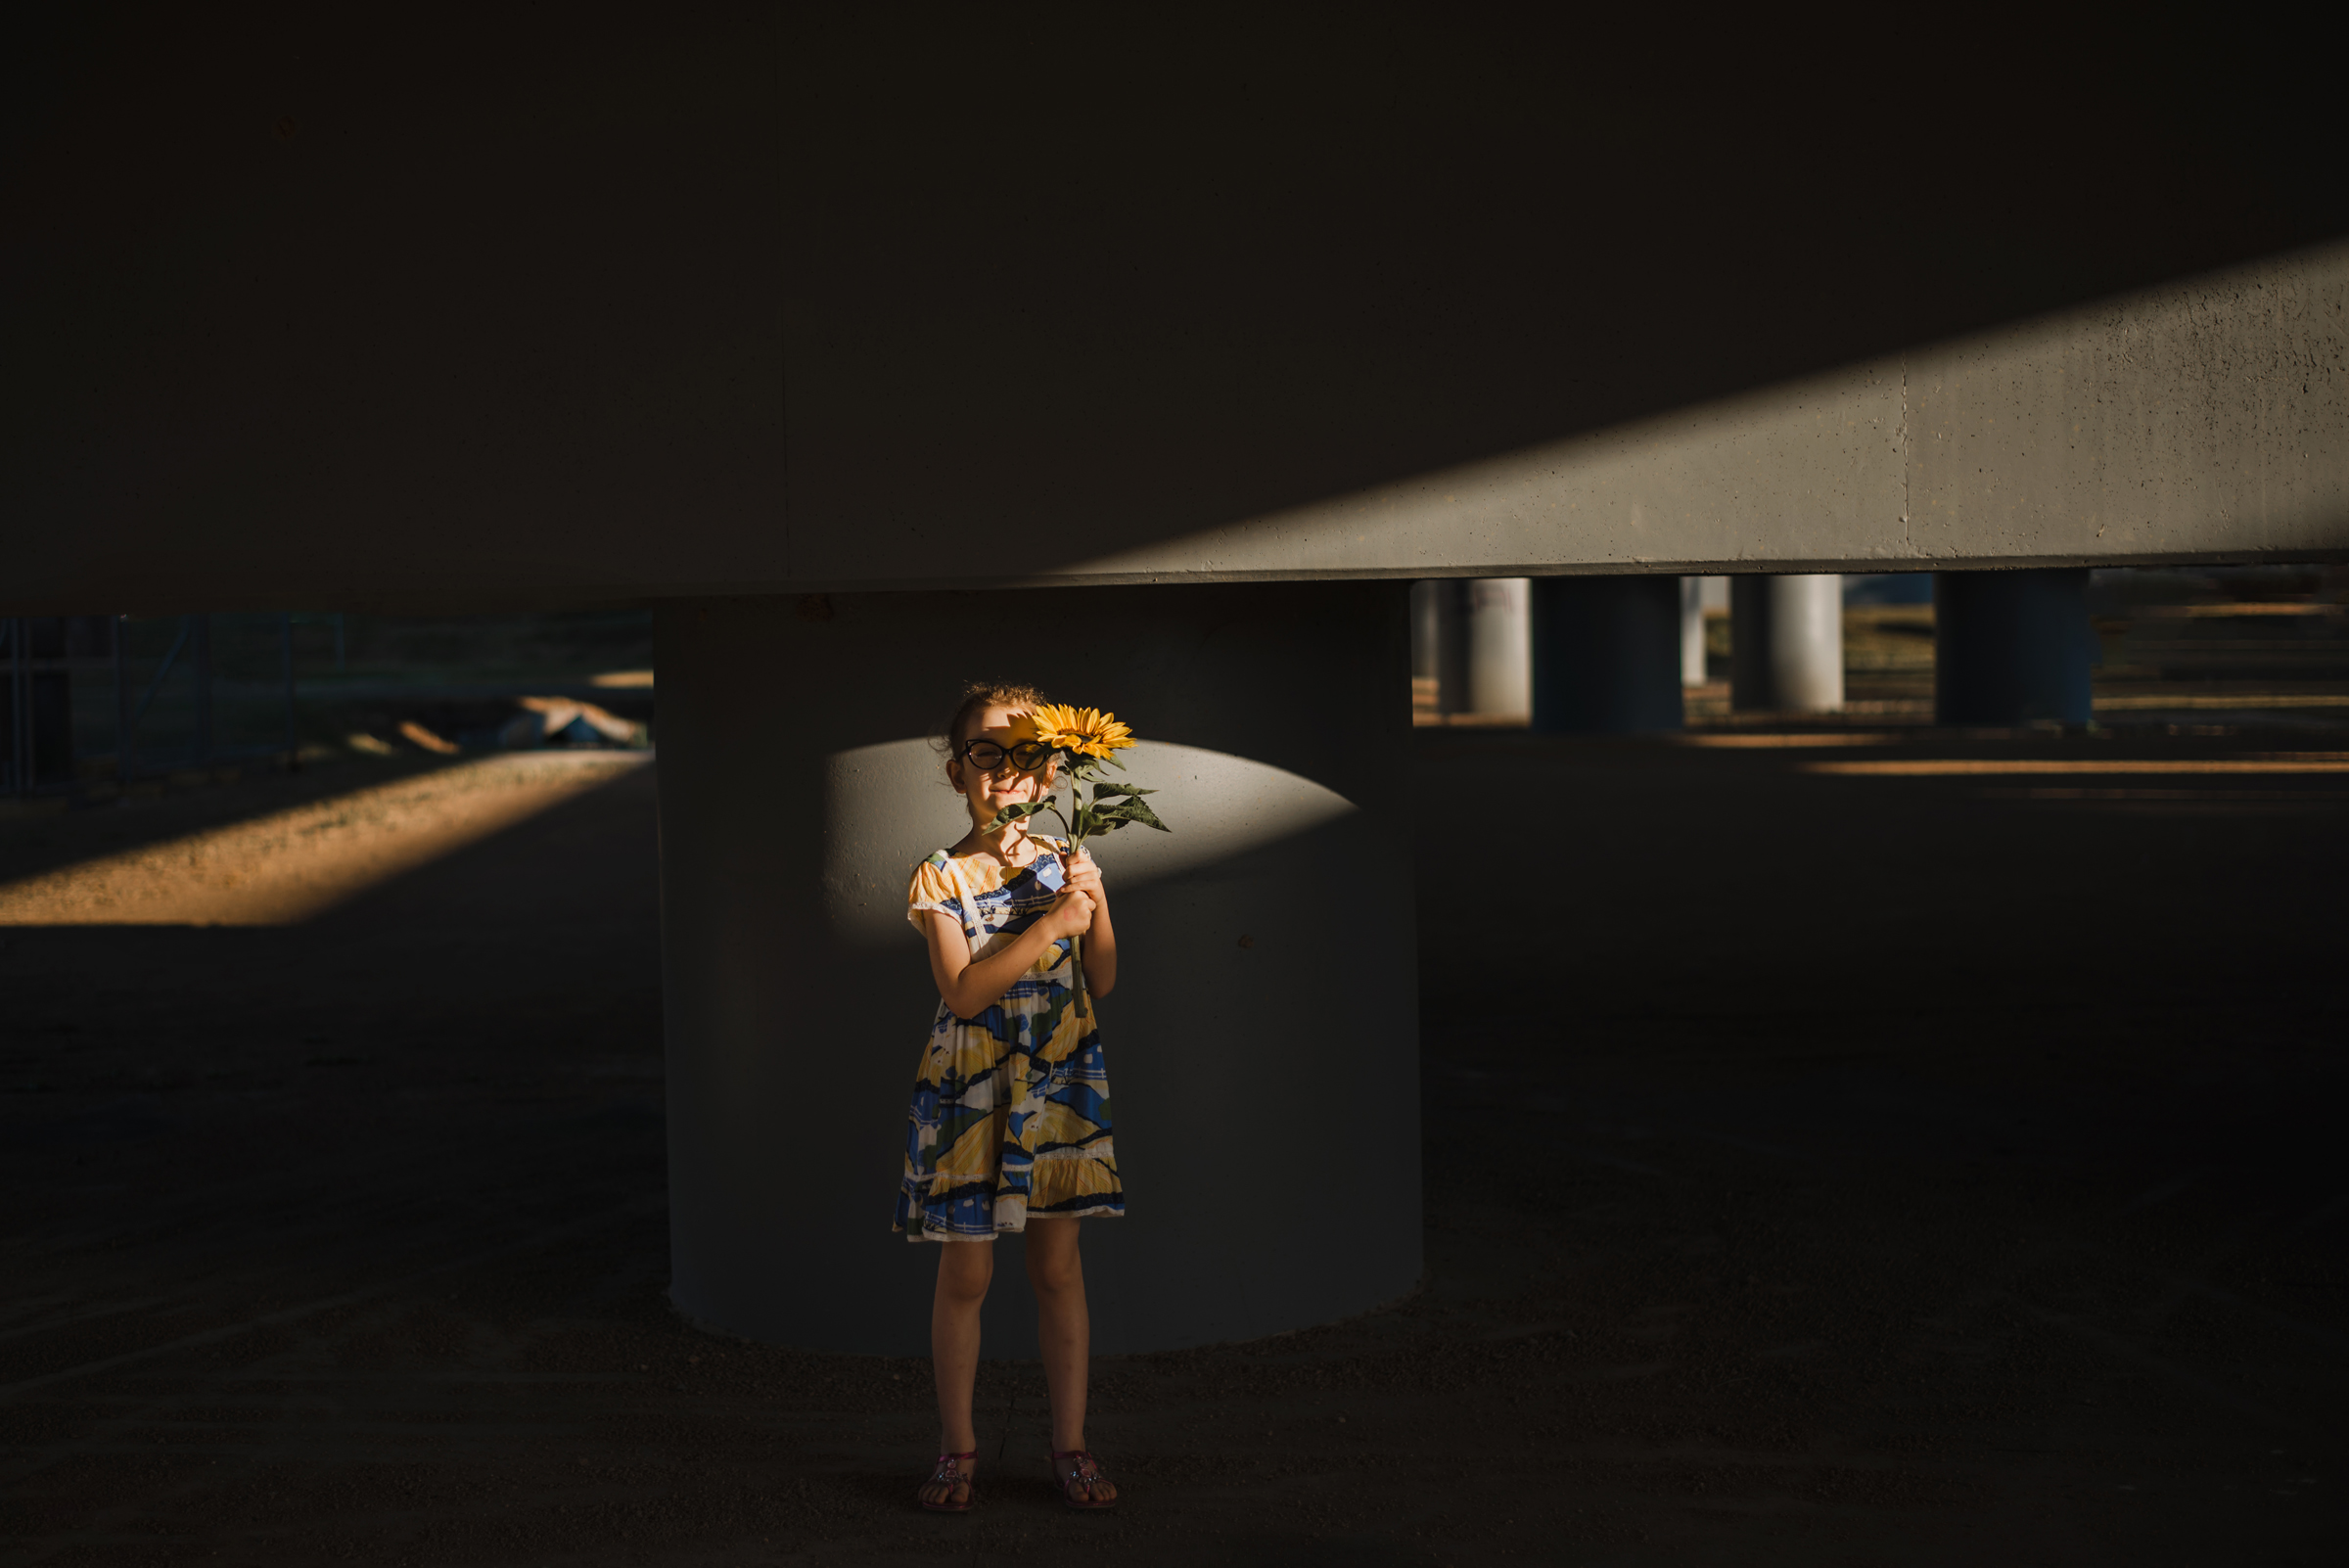 portrait_of_child_and_flower_in_shadows.jpg